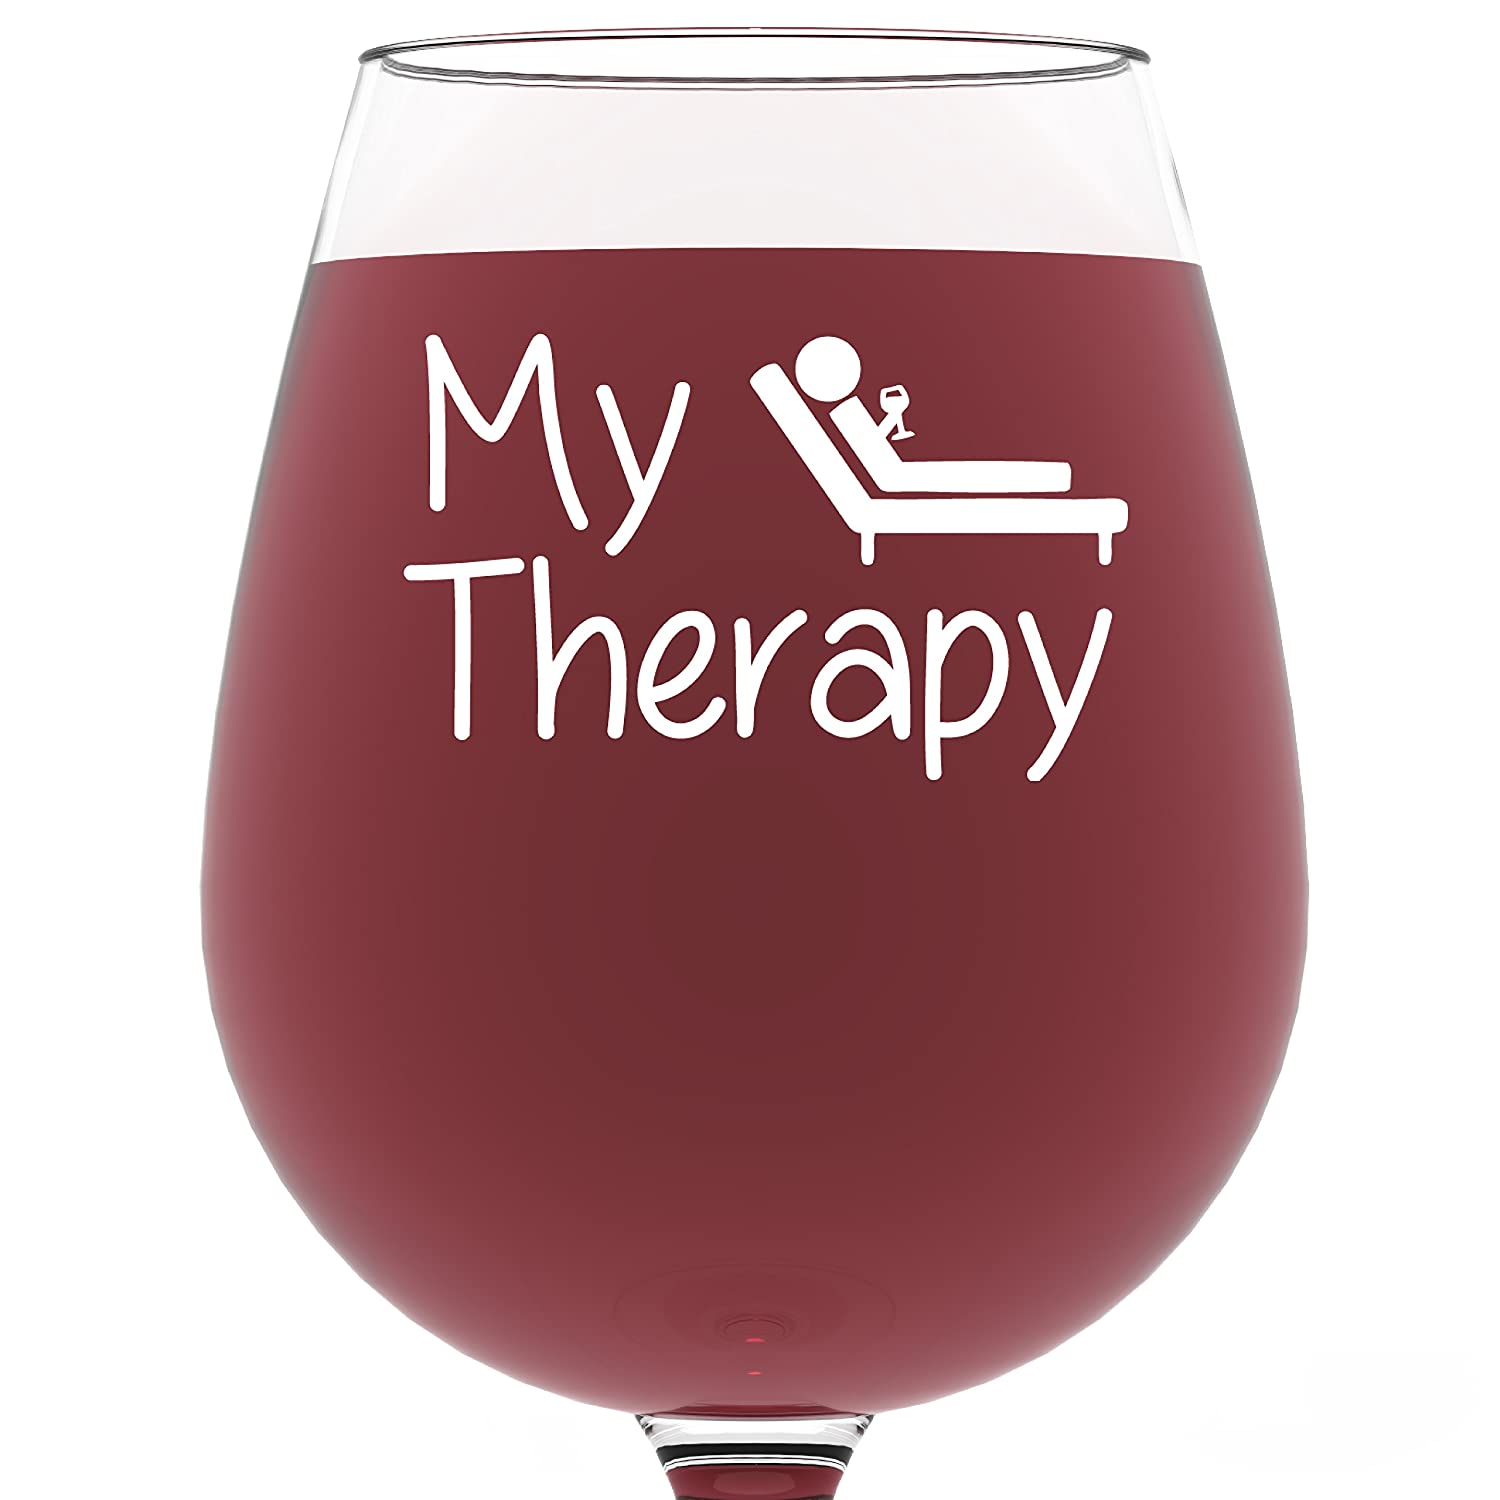 My Therapy Funny Wine Glass 13 oz - Best Christmas Gifts For Women - Unique Gift For Her - Novelty Birthday Present Idea For Mom, Wife, Girlfriend, Sister, Friend, Boss, Coworker, Adult Daughter